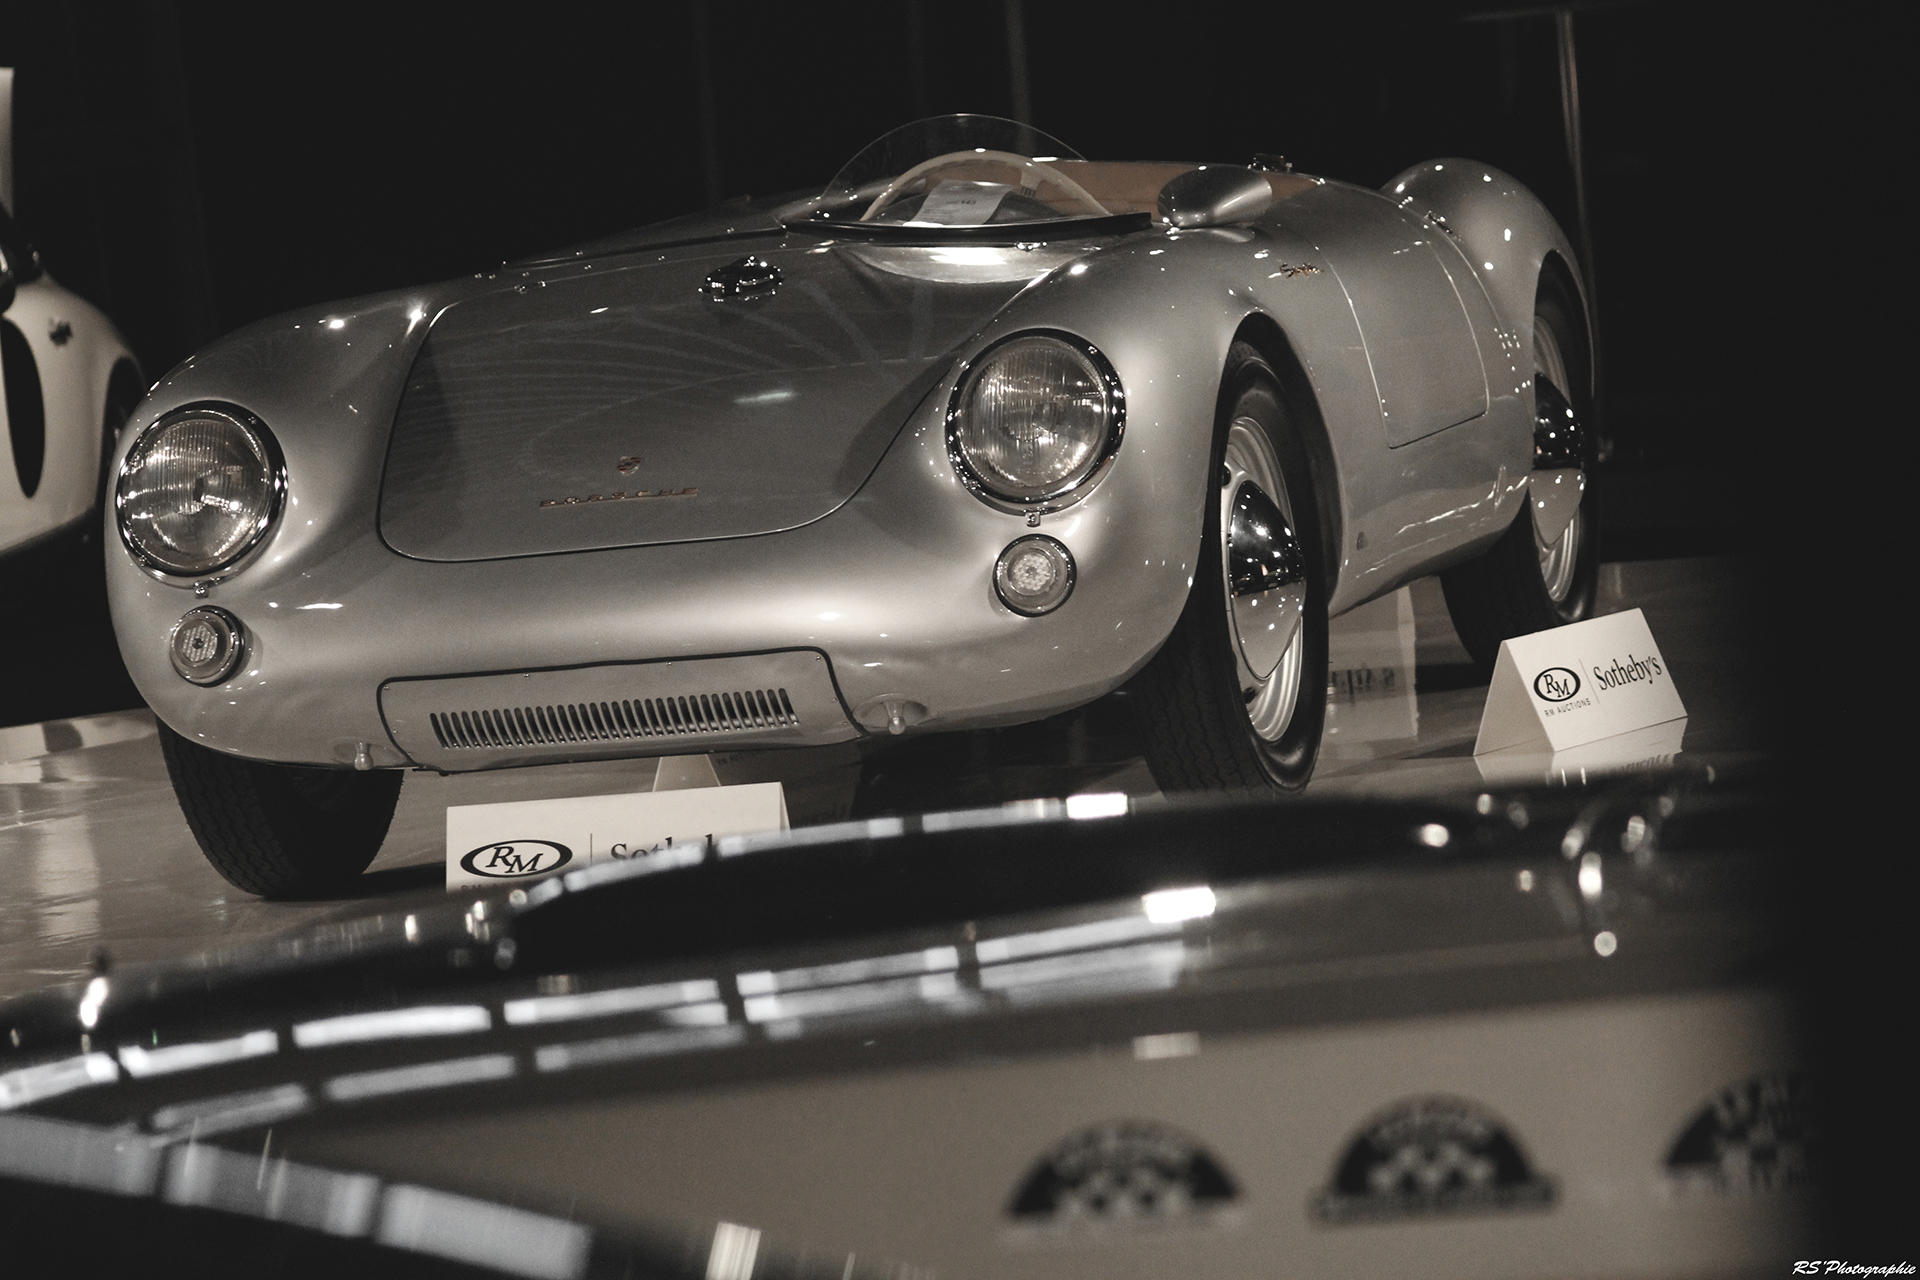 Porsche 550 Spyder by Wendler - 1955 - RM - Auctions - 2016 - Arnaud Demasier RS Photographie